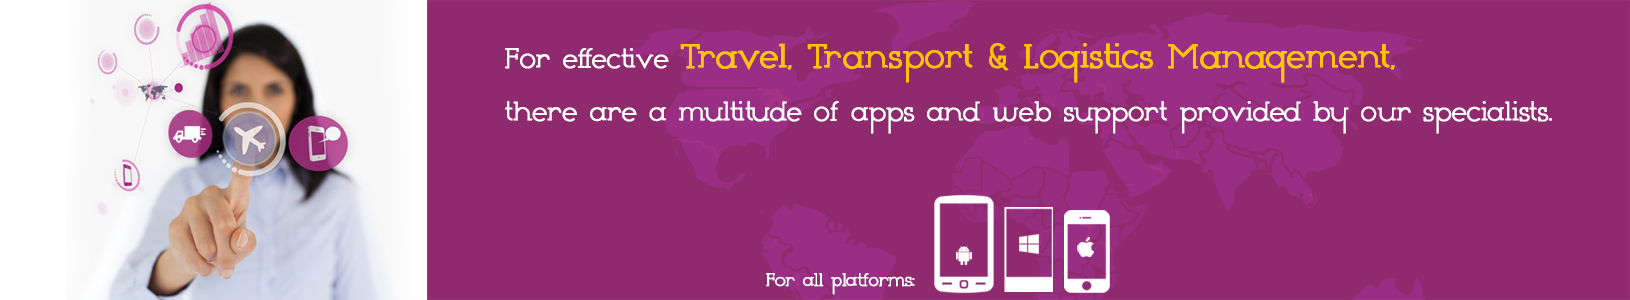 mobility-solution-travel